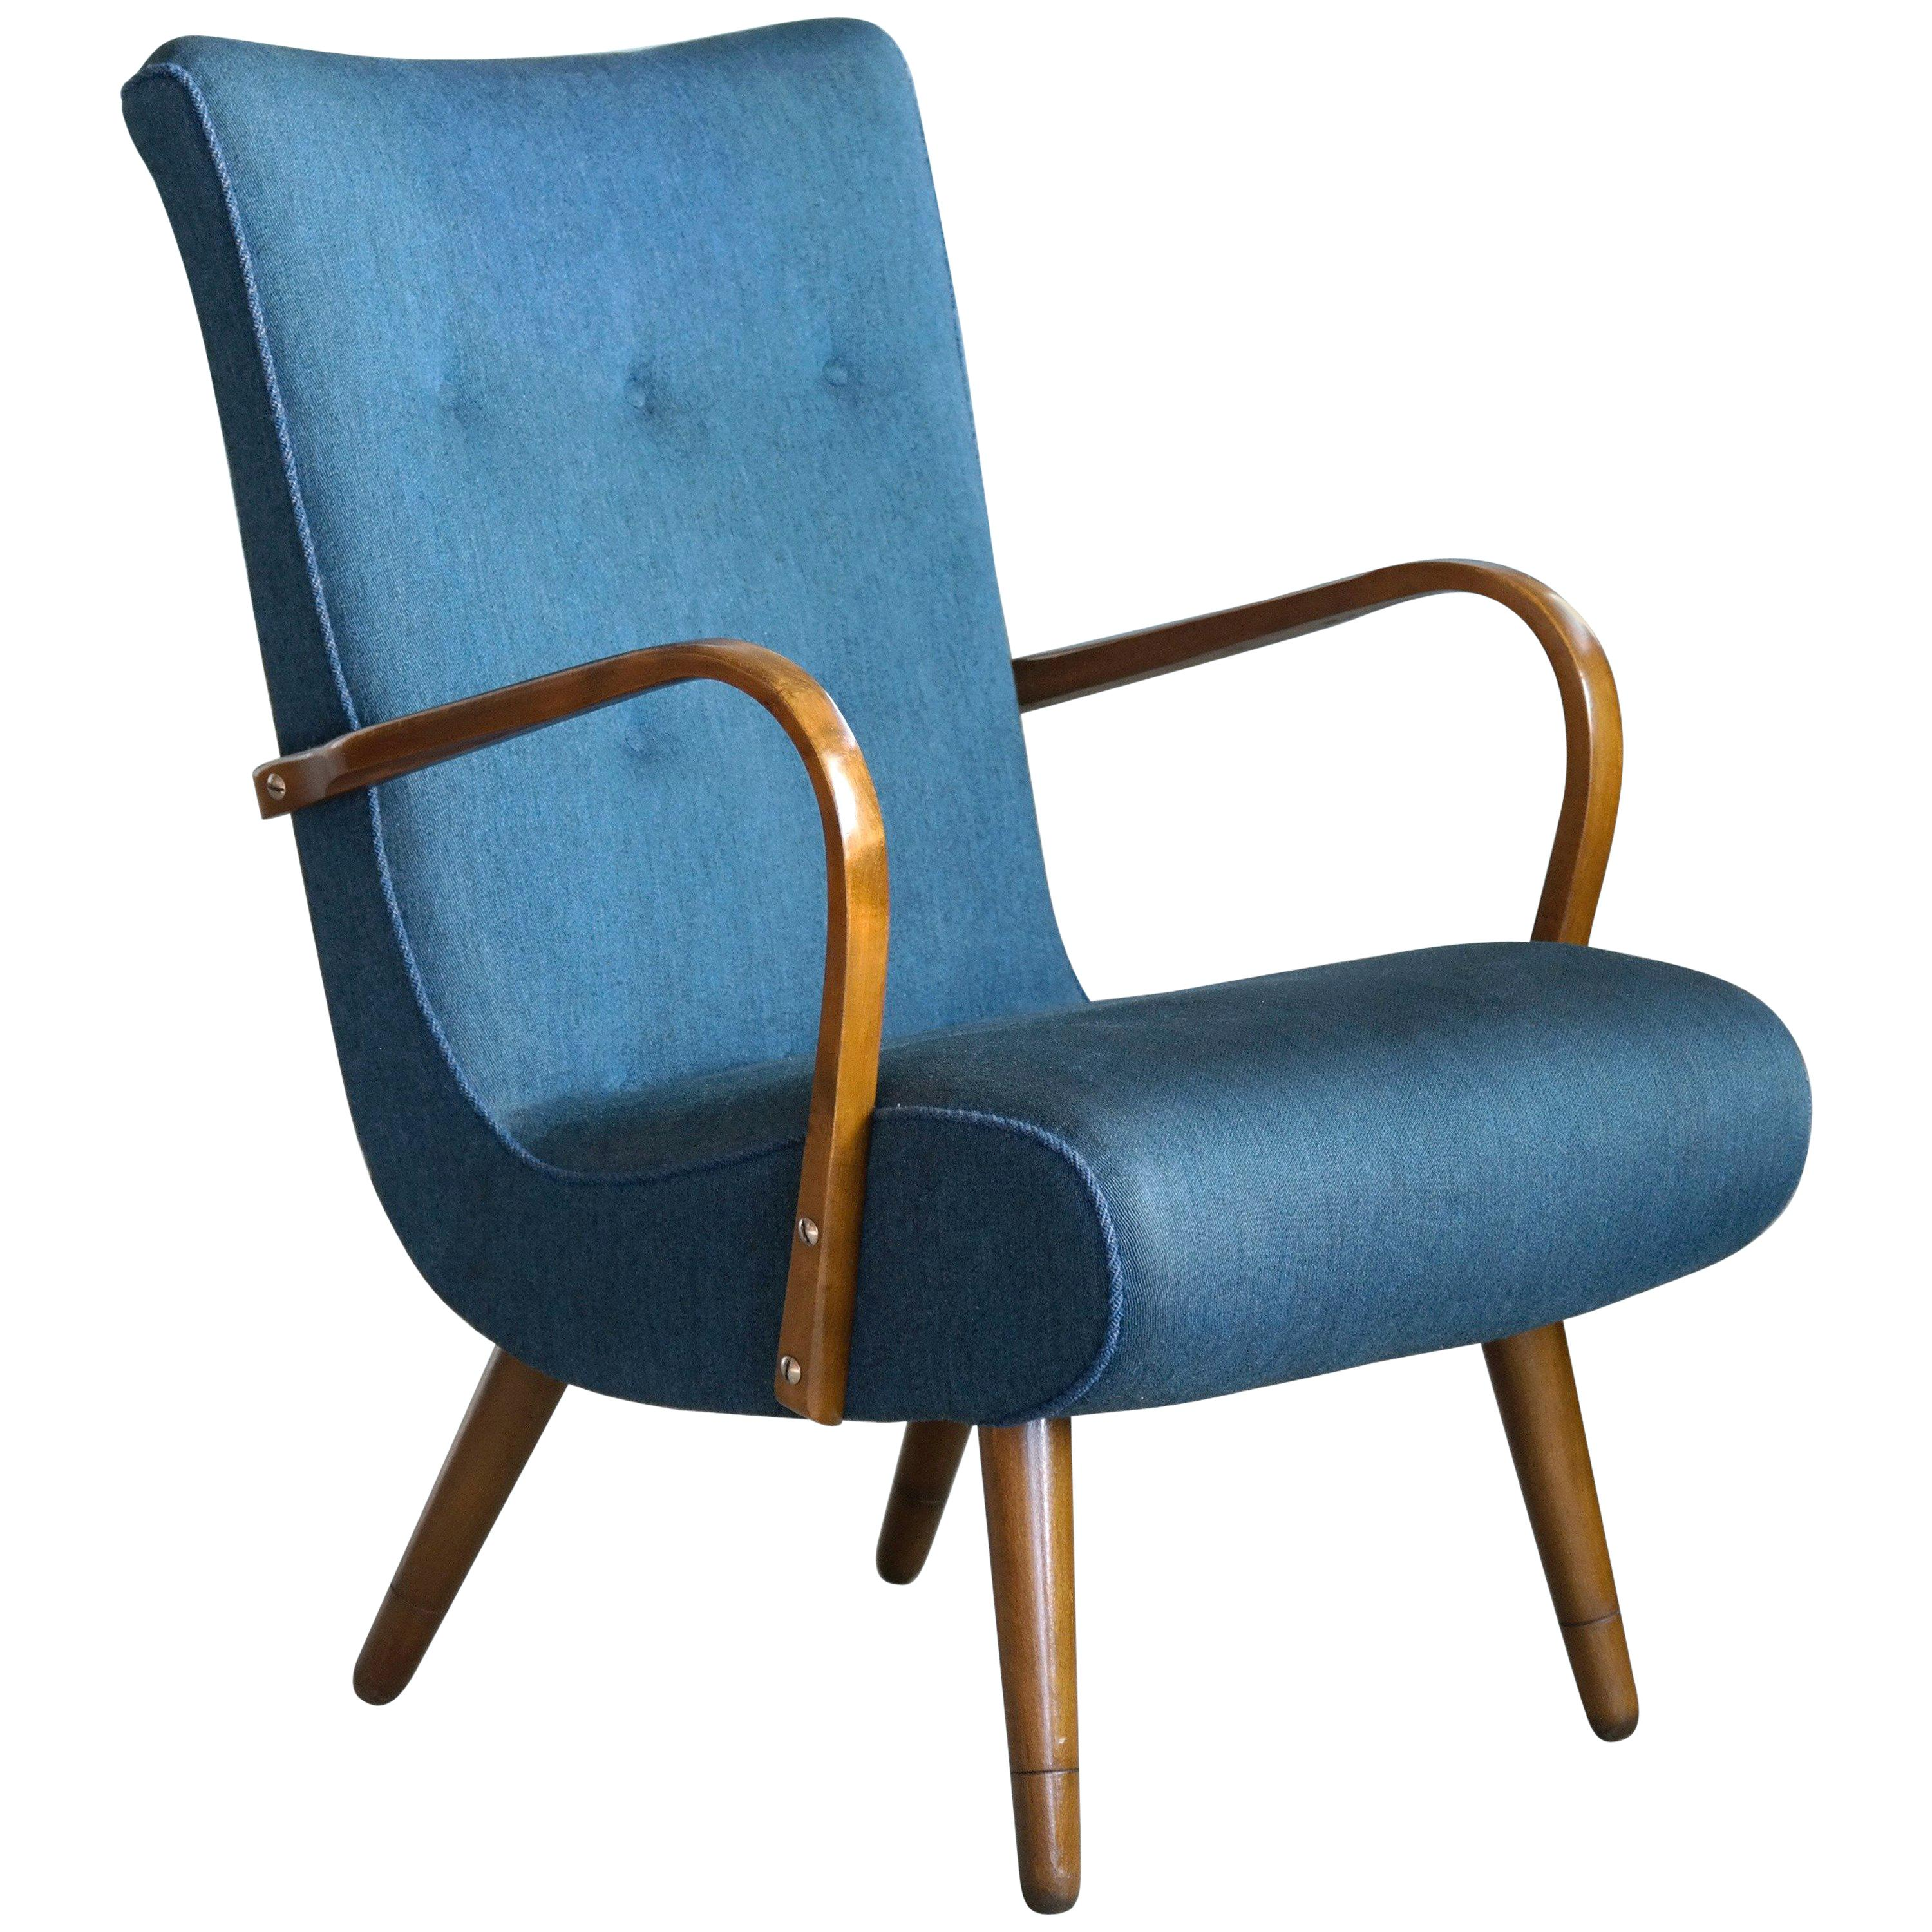 Danish Sculptural Lounge Chair with Curved Wooden Armrests, 1950s